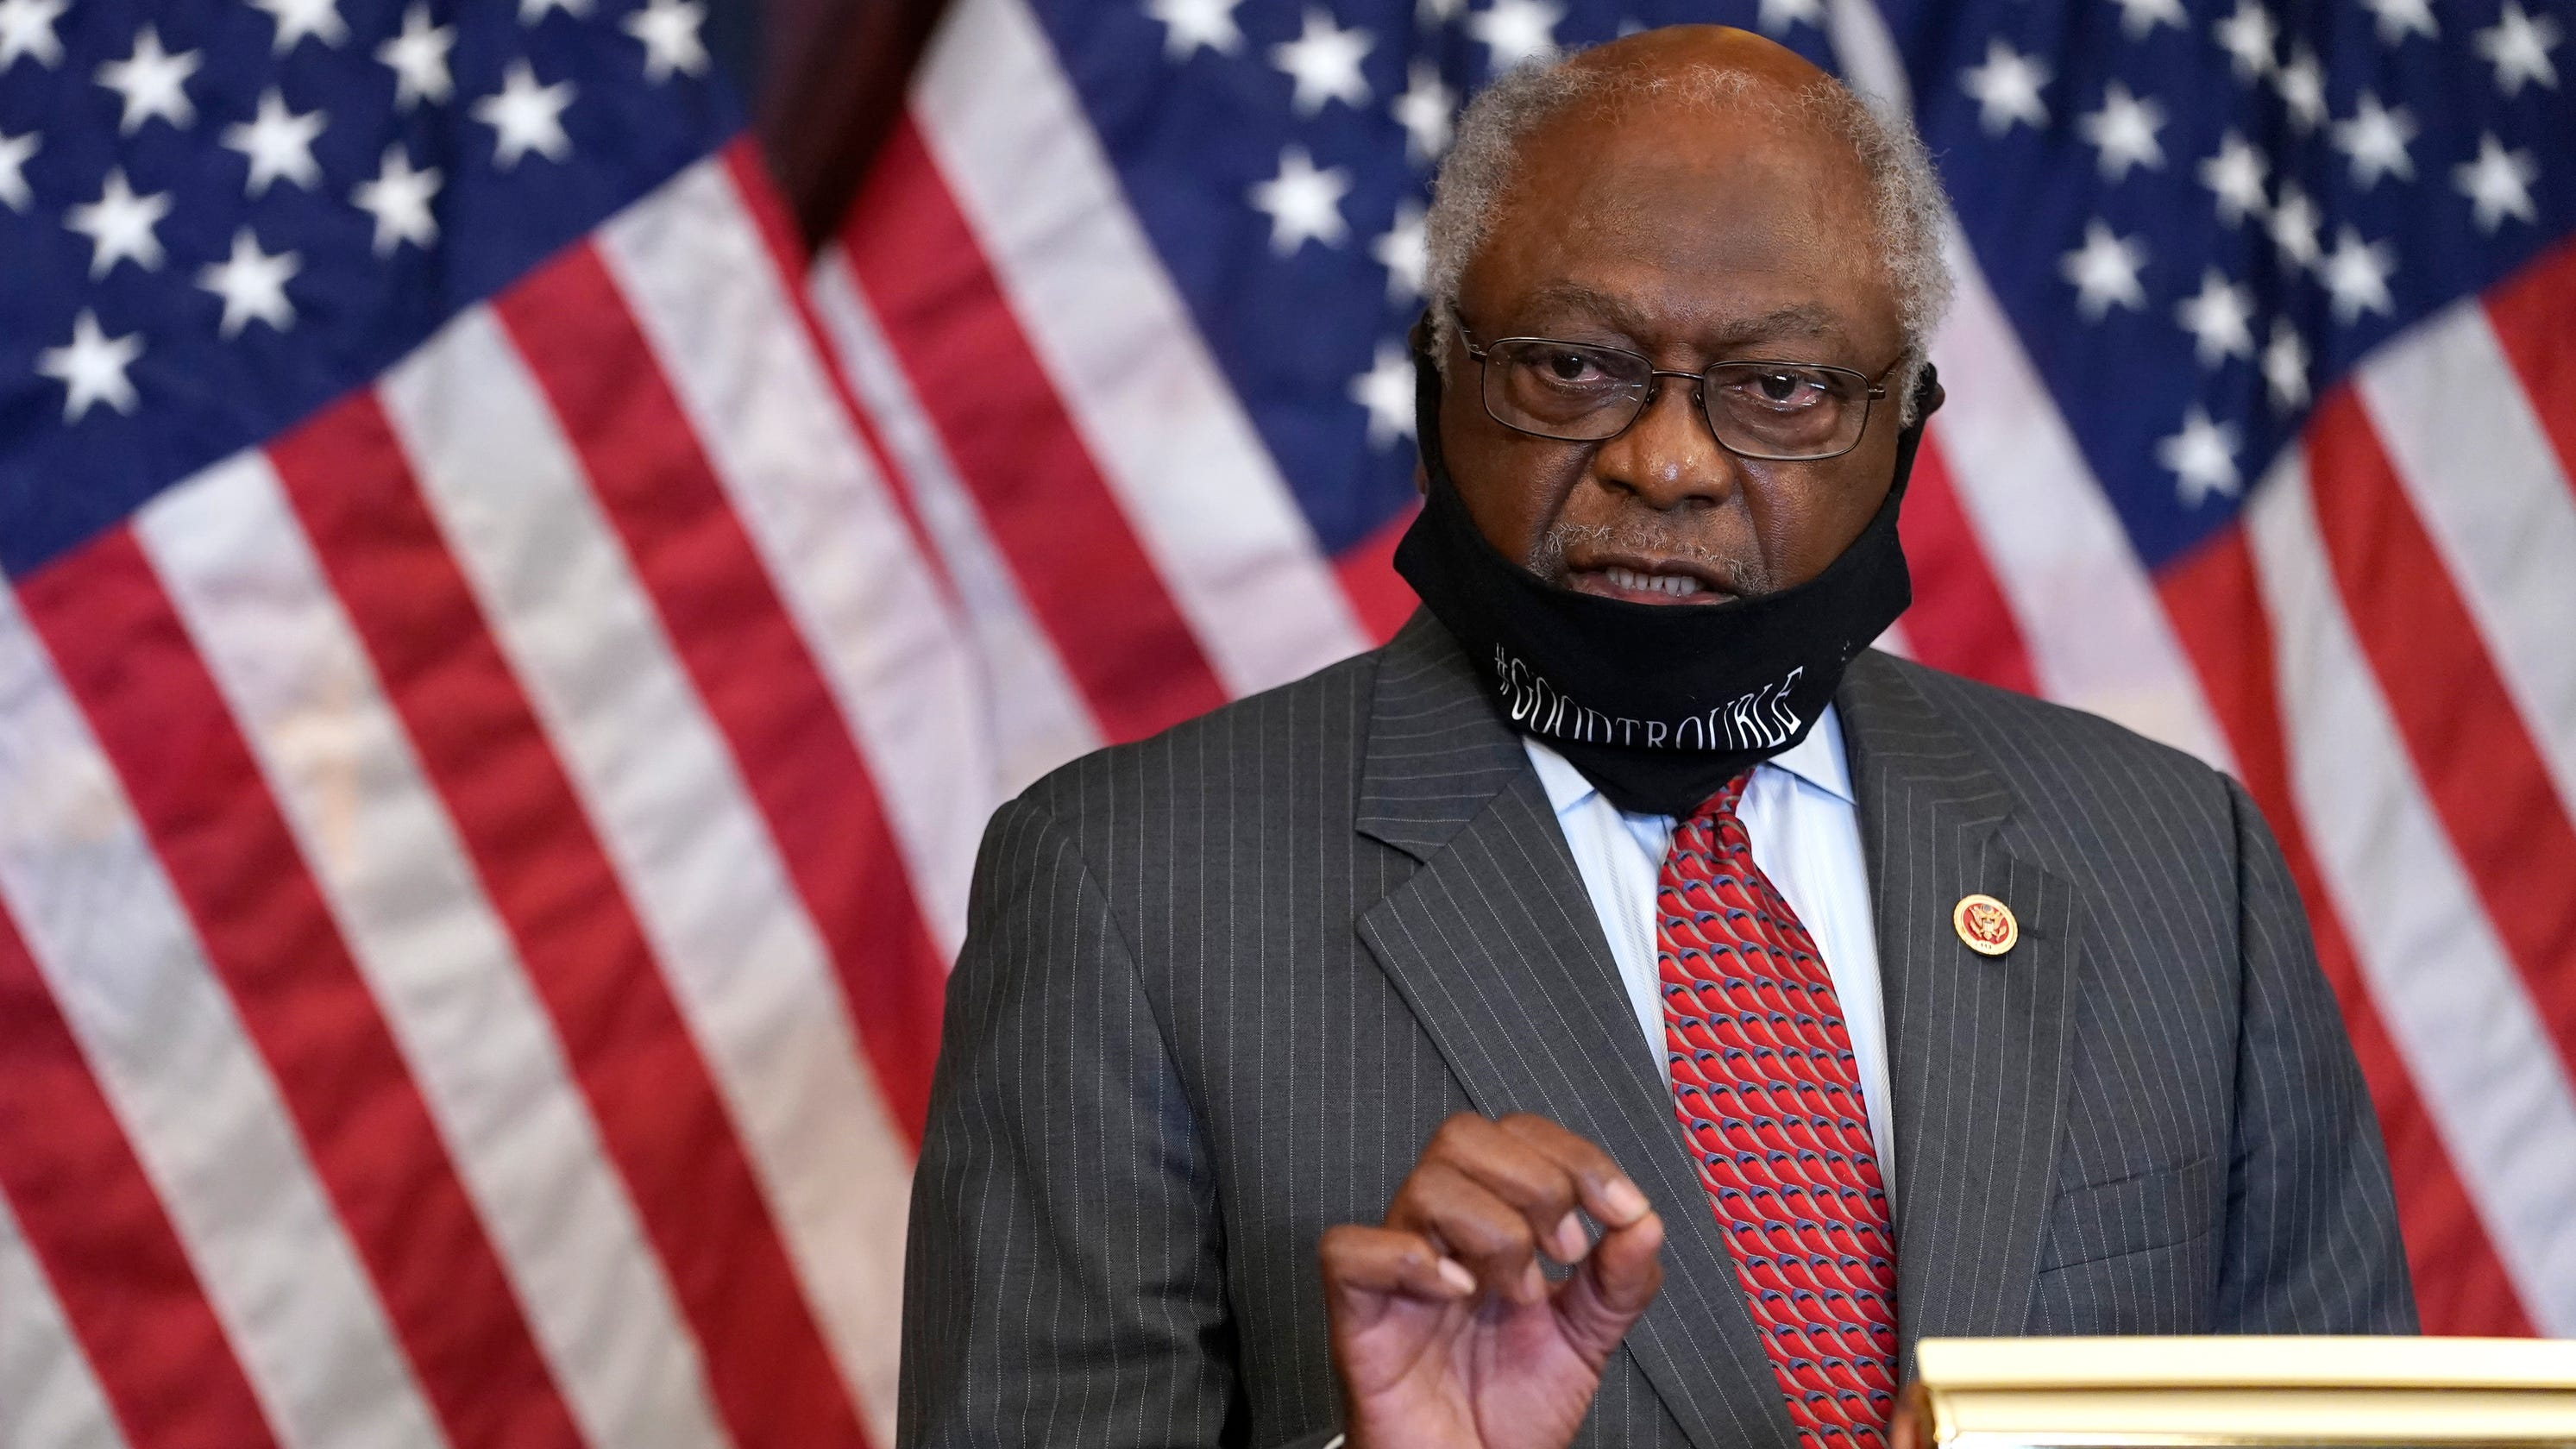 Rep. Jim Clyburn: Our country is at a crossroads. We must urgently reclaim King's vision of America